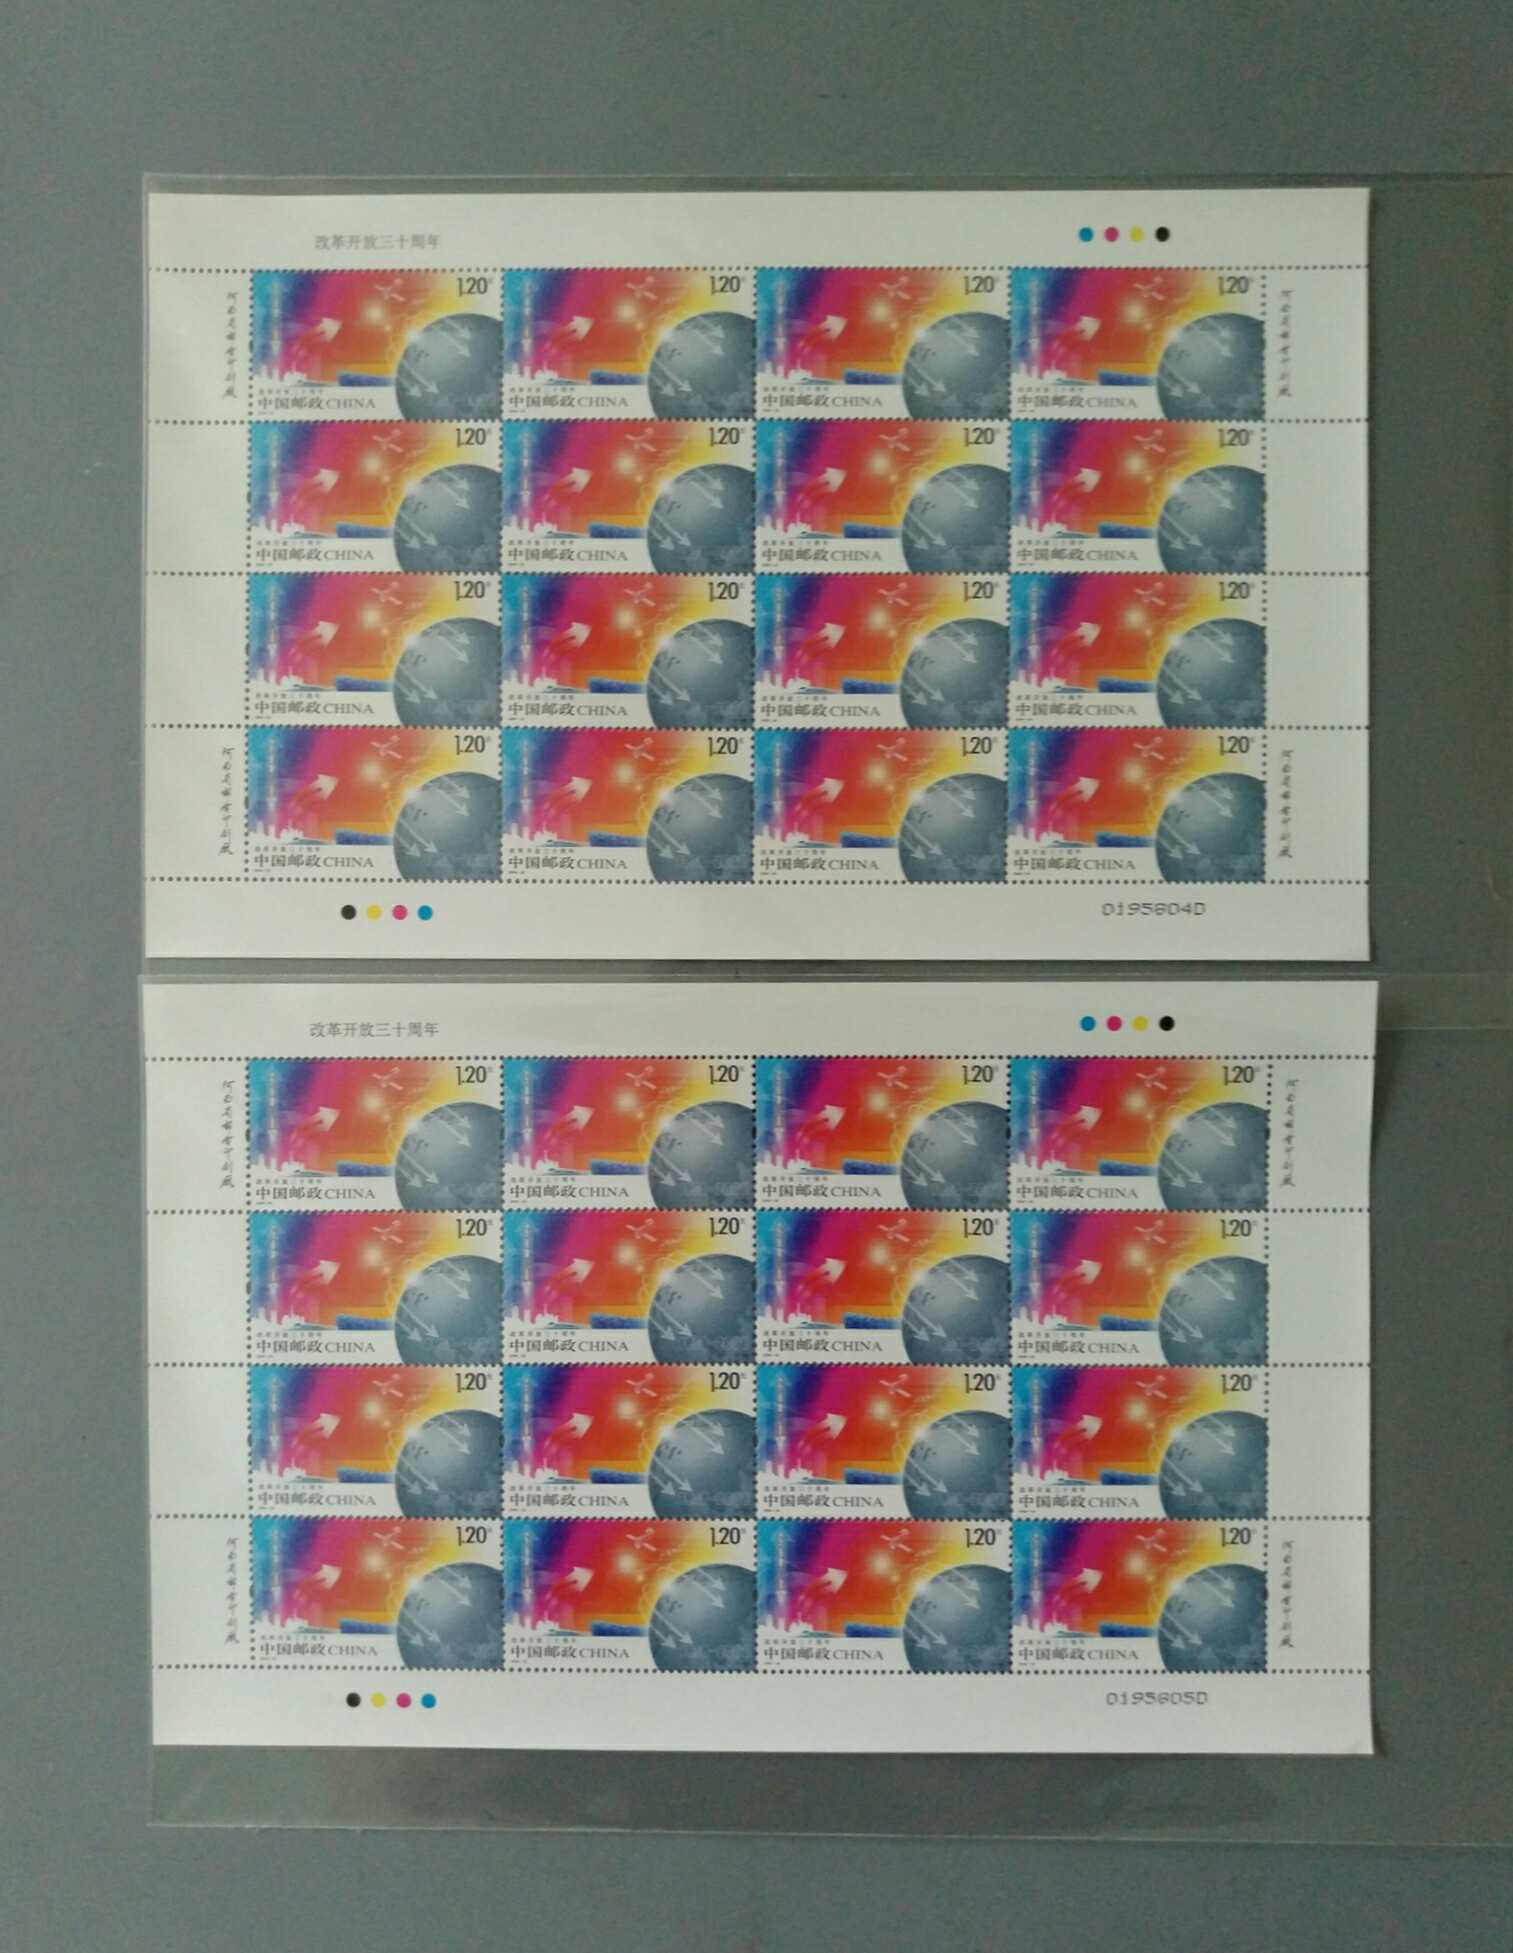 On the 30th anniversary of the reform and opening up in 2008-28, the full range of authentic original glue for the large-scale stamps was delivered at a special price.